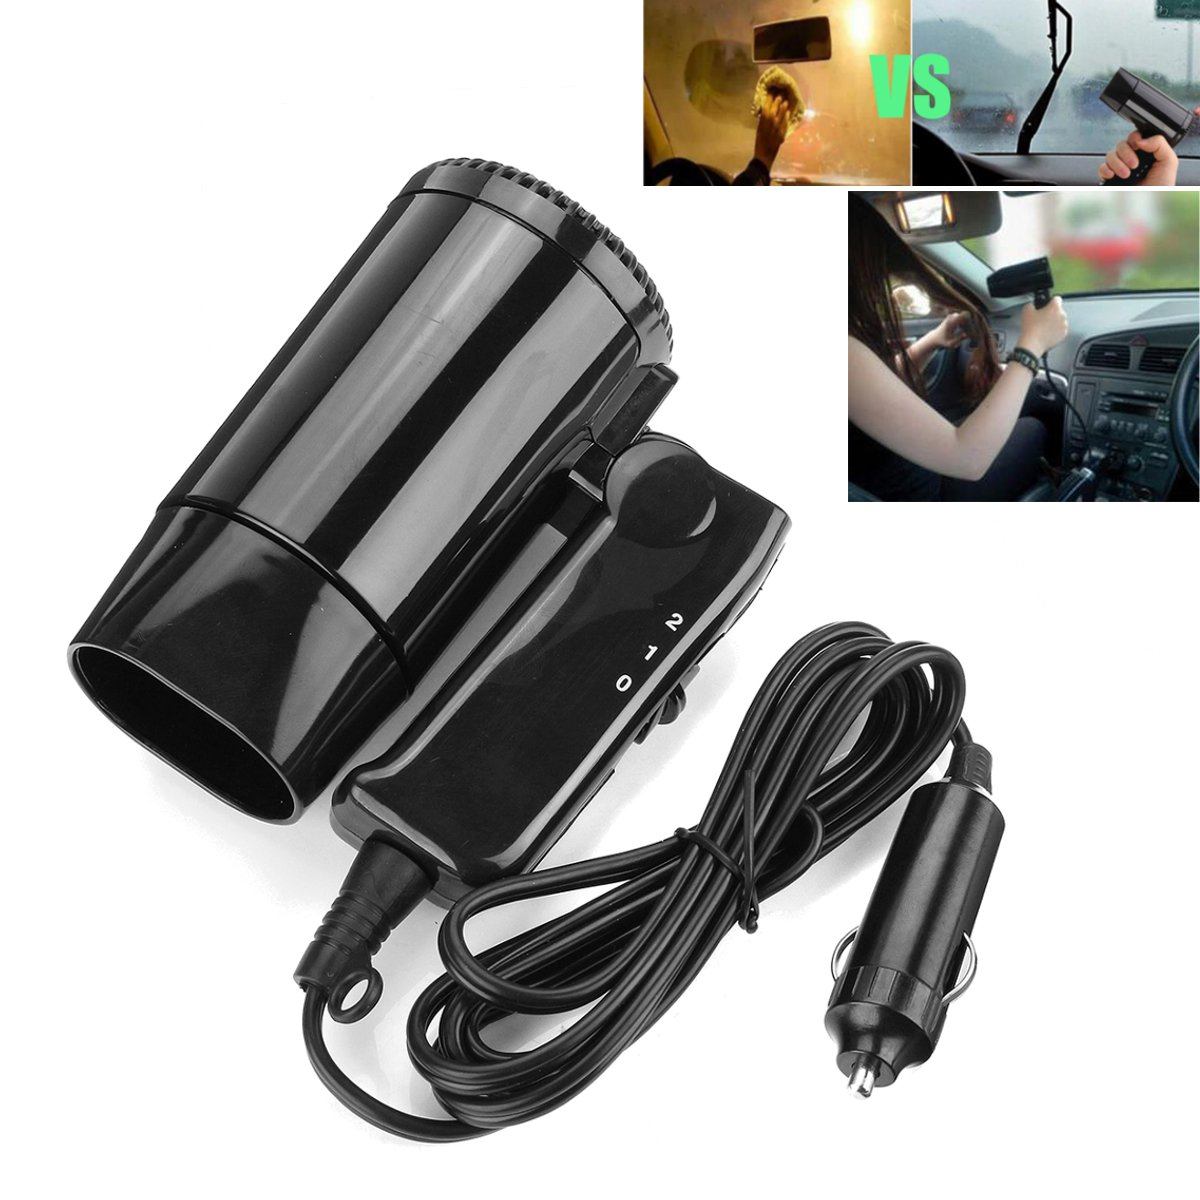 12V Hot & Cold Travel Two Speed Car Portable Folding Camping Hair Dryer Window Defroster